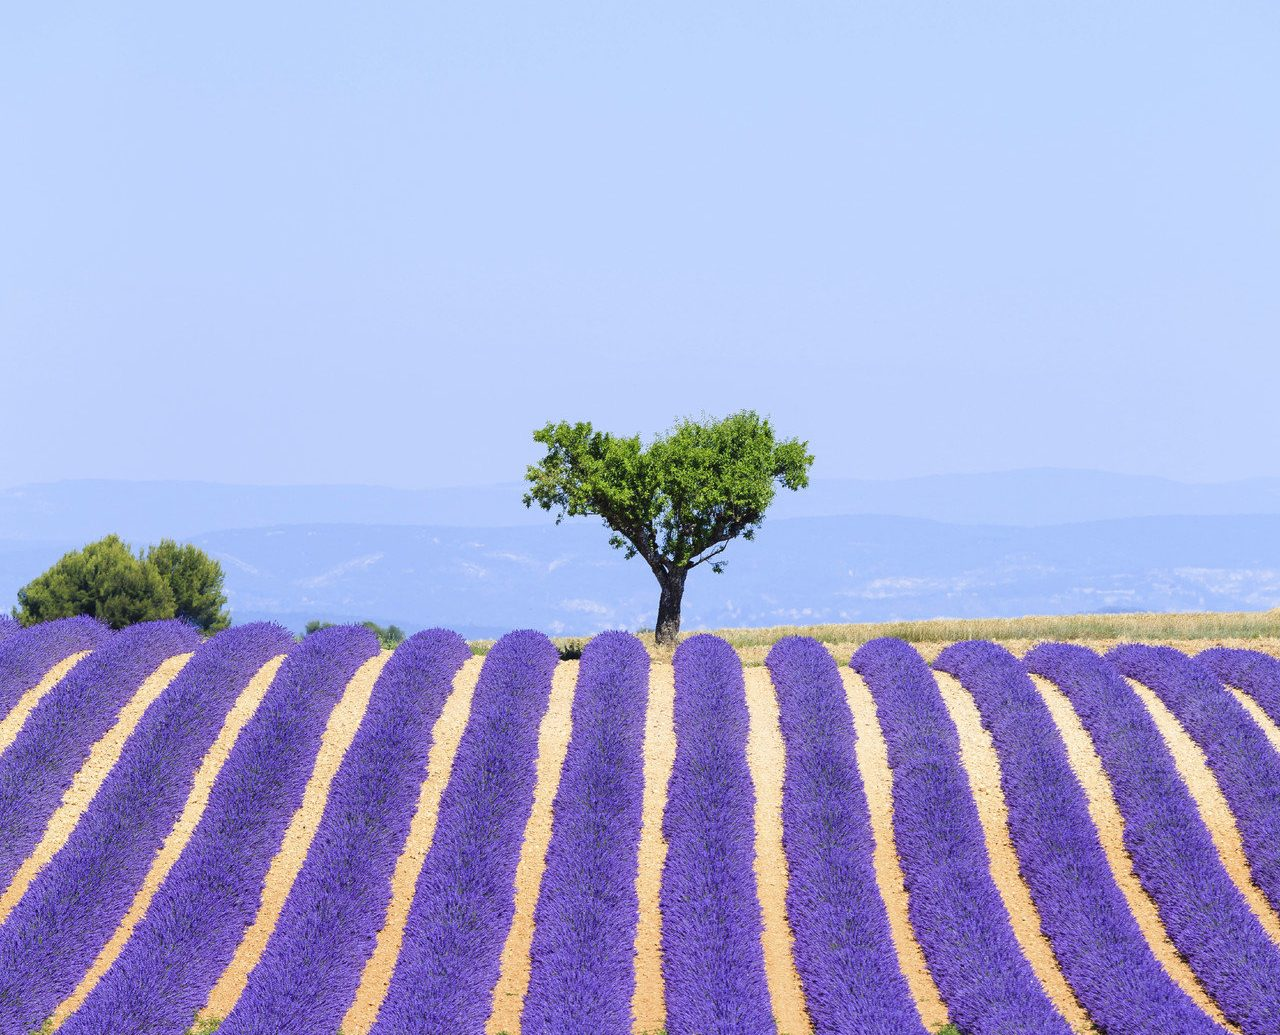 Trip Ideas sky plant outdoor flower lavender field agriculture ecosystem land plant soil flowering plant grass family english lavender crop colorful colored